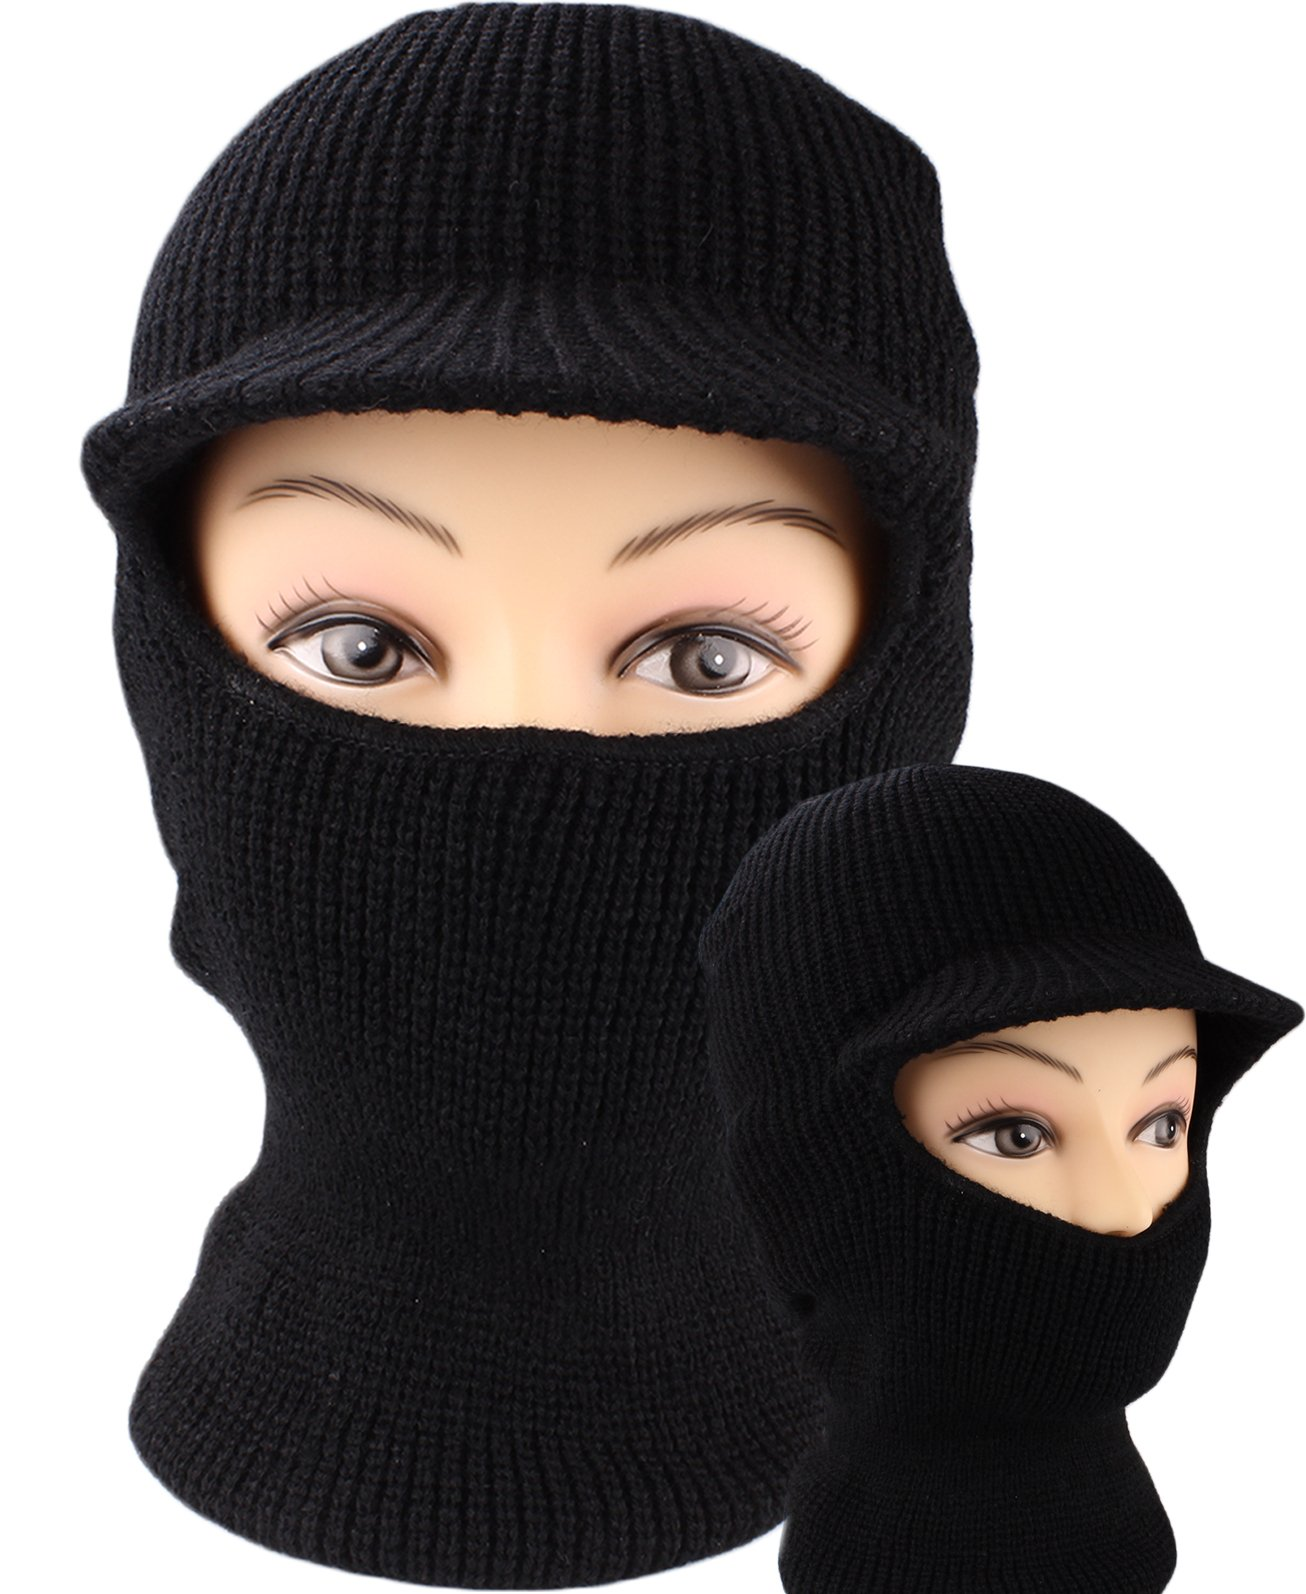 fceb761f7a9 Get Quotations · Black Knit One Hole Ski Face Mask with Visor Balaclava for  Skiing Hunting Biking